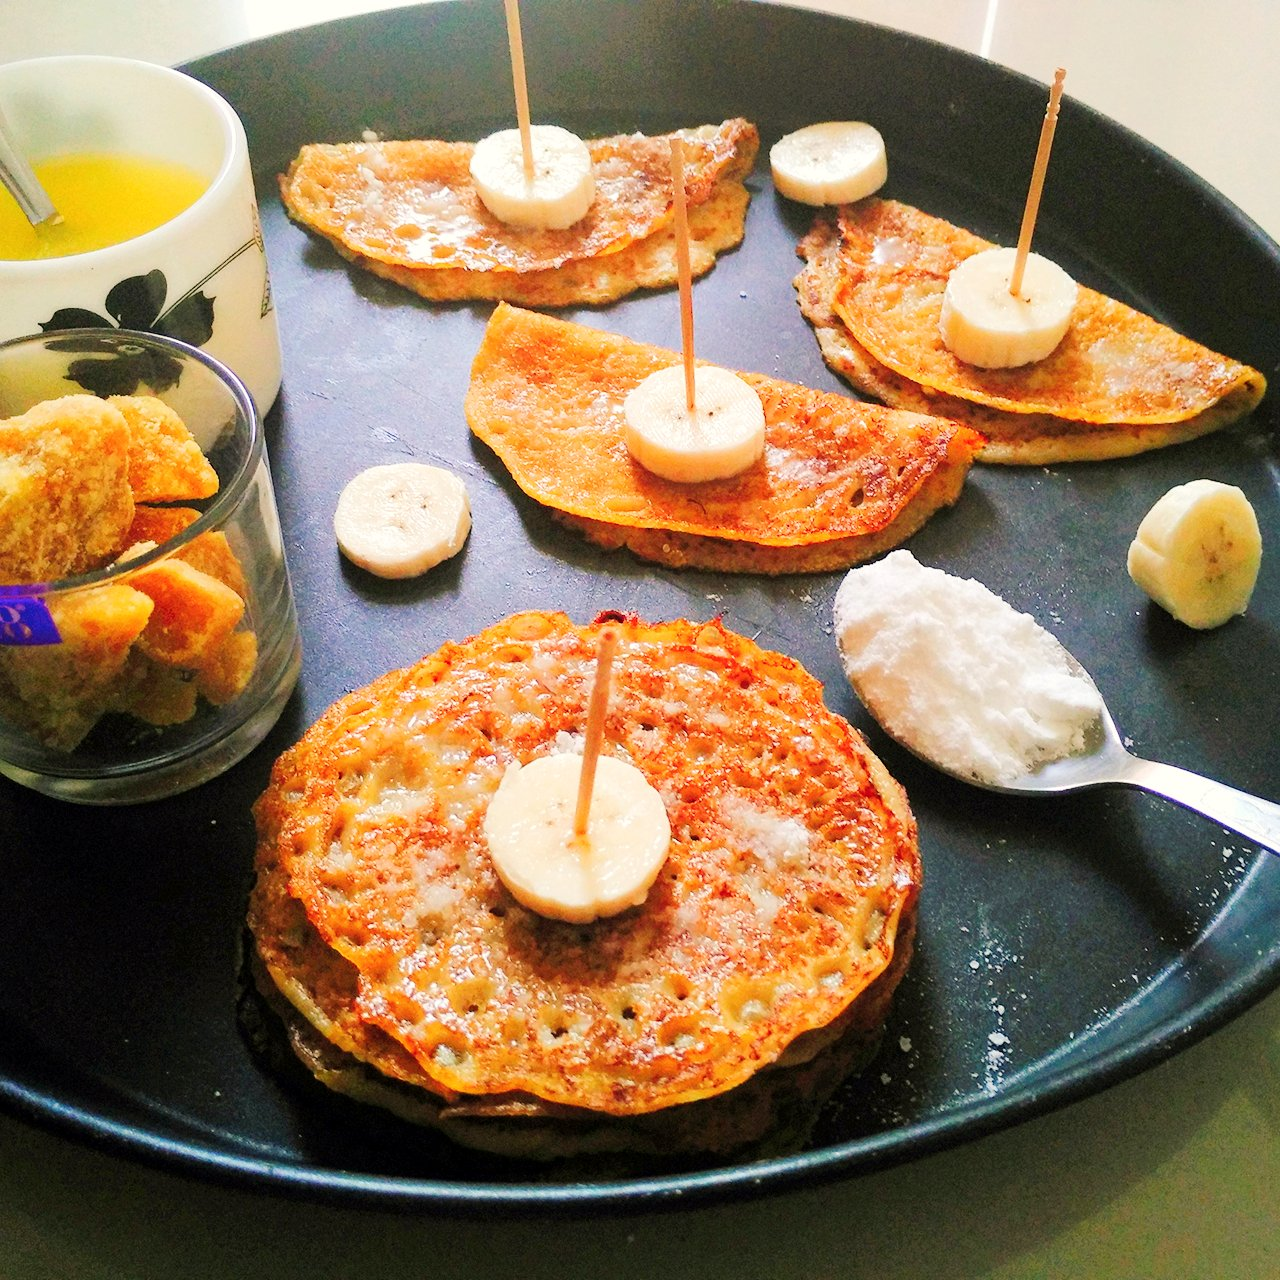 Gujarati meetha pudla recipe sweet whole wheat pancake by gujarati meetha pudla recipe sweet whole wheat pancake forumfinder Image collections